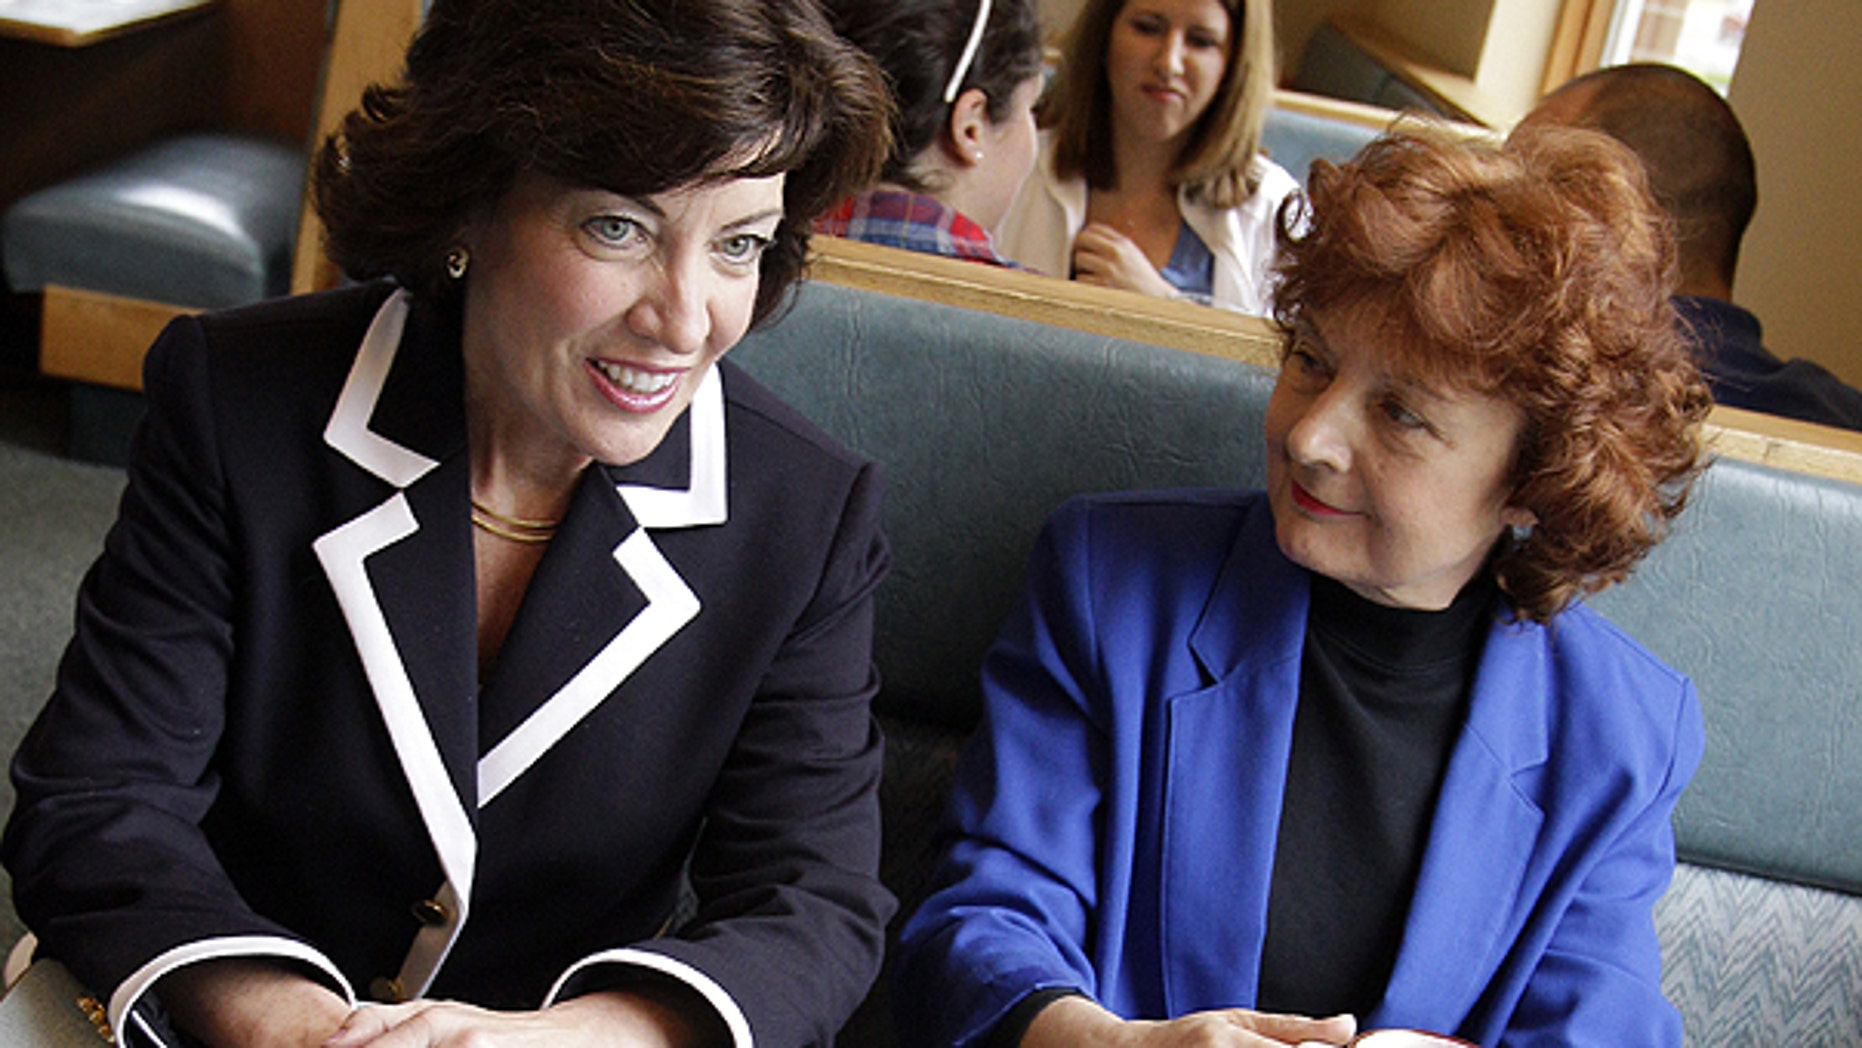 May 24: Democratic candidate for the 26th District Congressional seat, Kathy Hochul, left, talks with Debra Norton, right, and her husband Morrie Newman during a campaign stop at a restaurant in Amherst, N.Y.